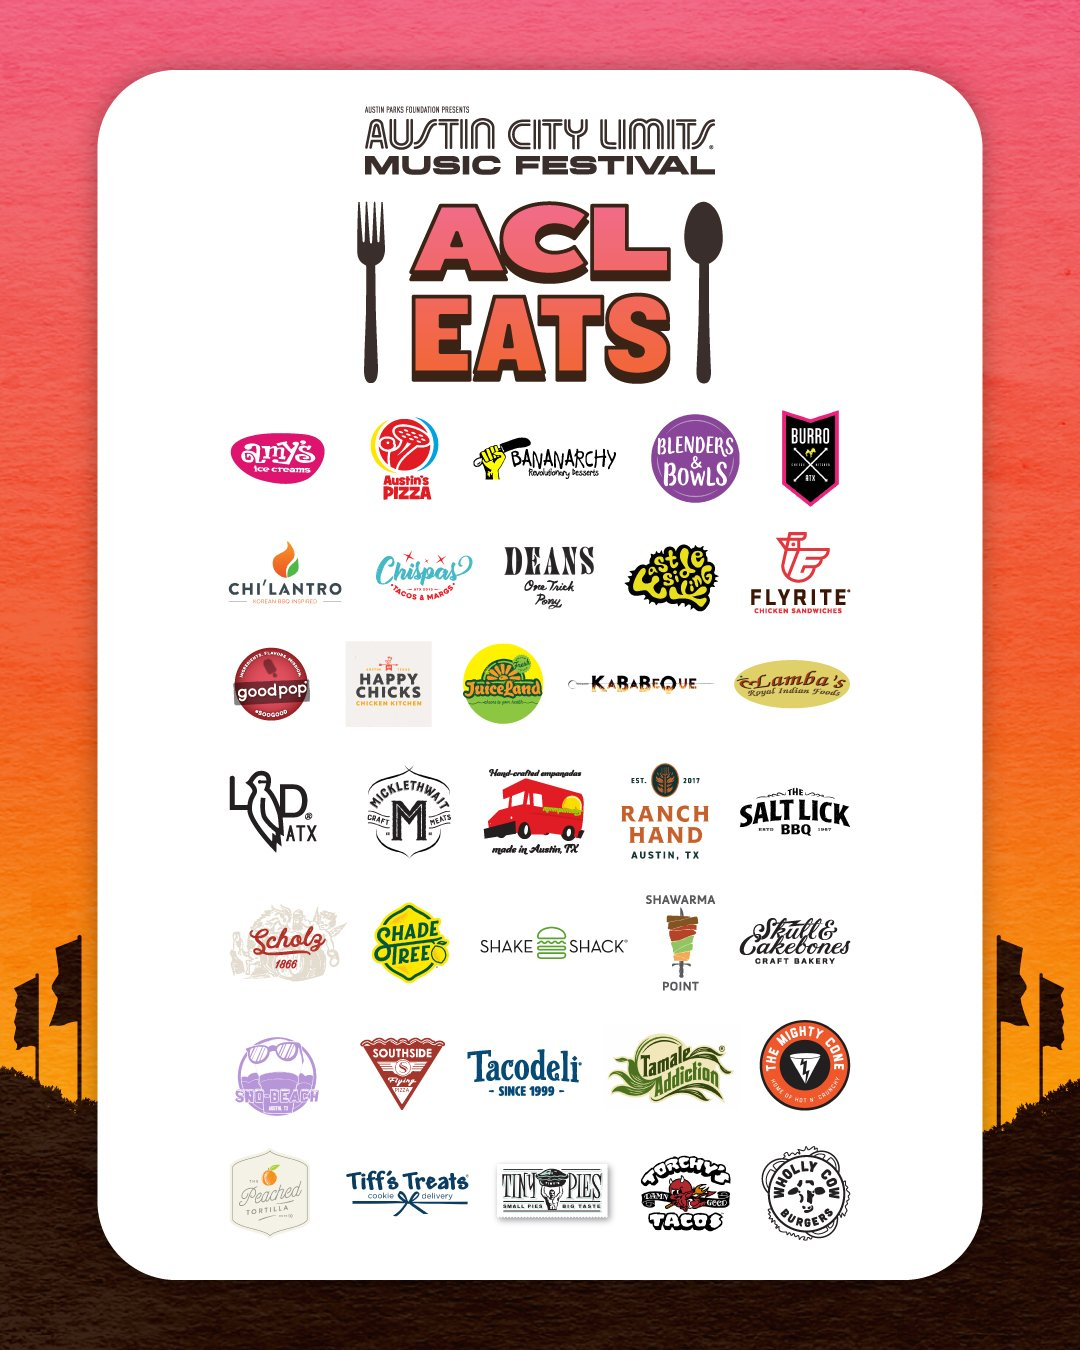 ACL Eats lineup